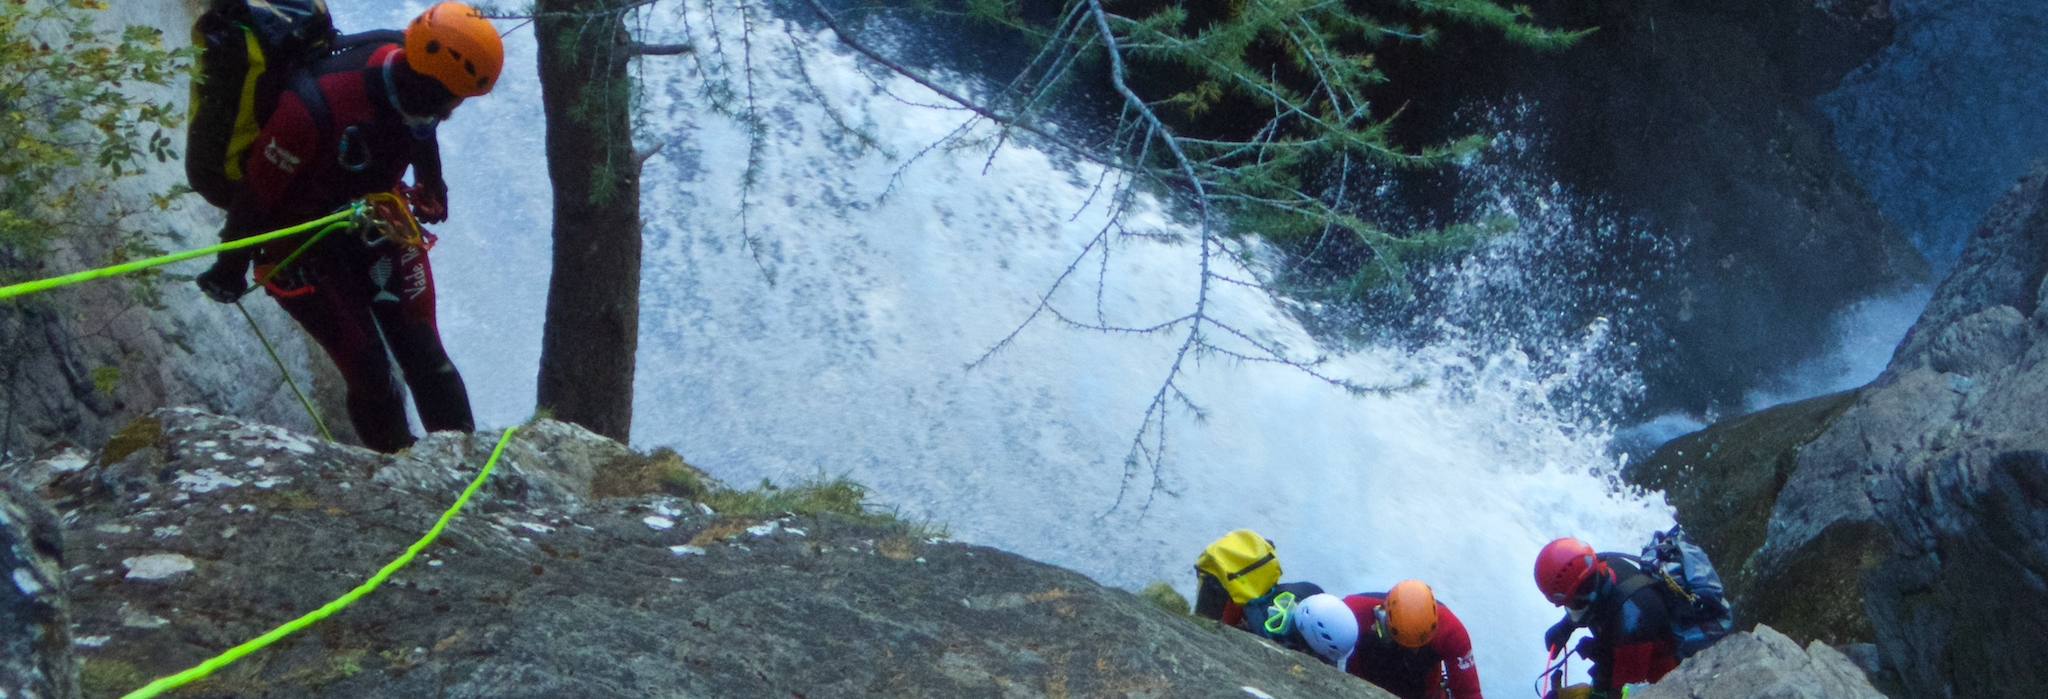 Canyoning Expert Tour Oules de Freissinieres